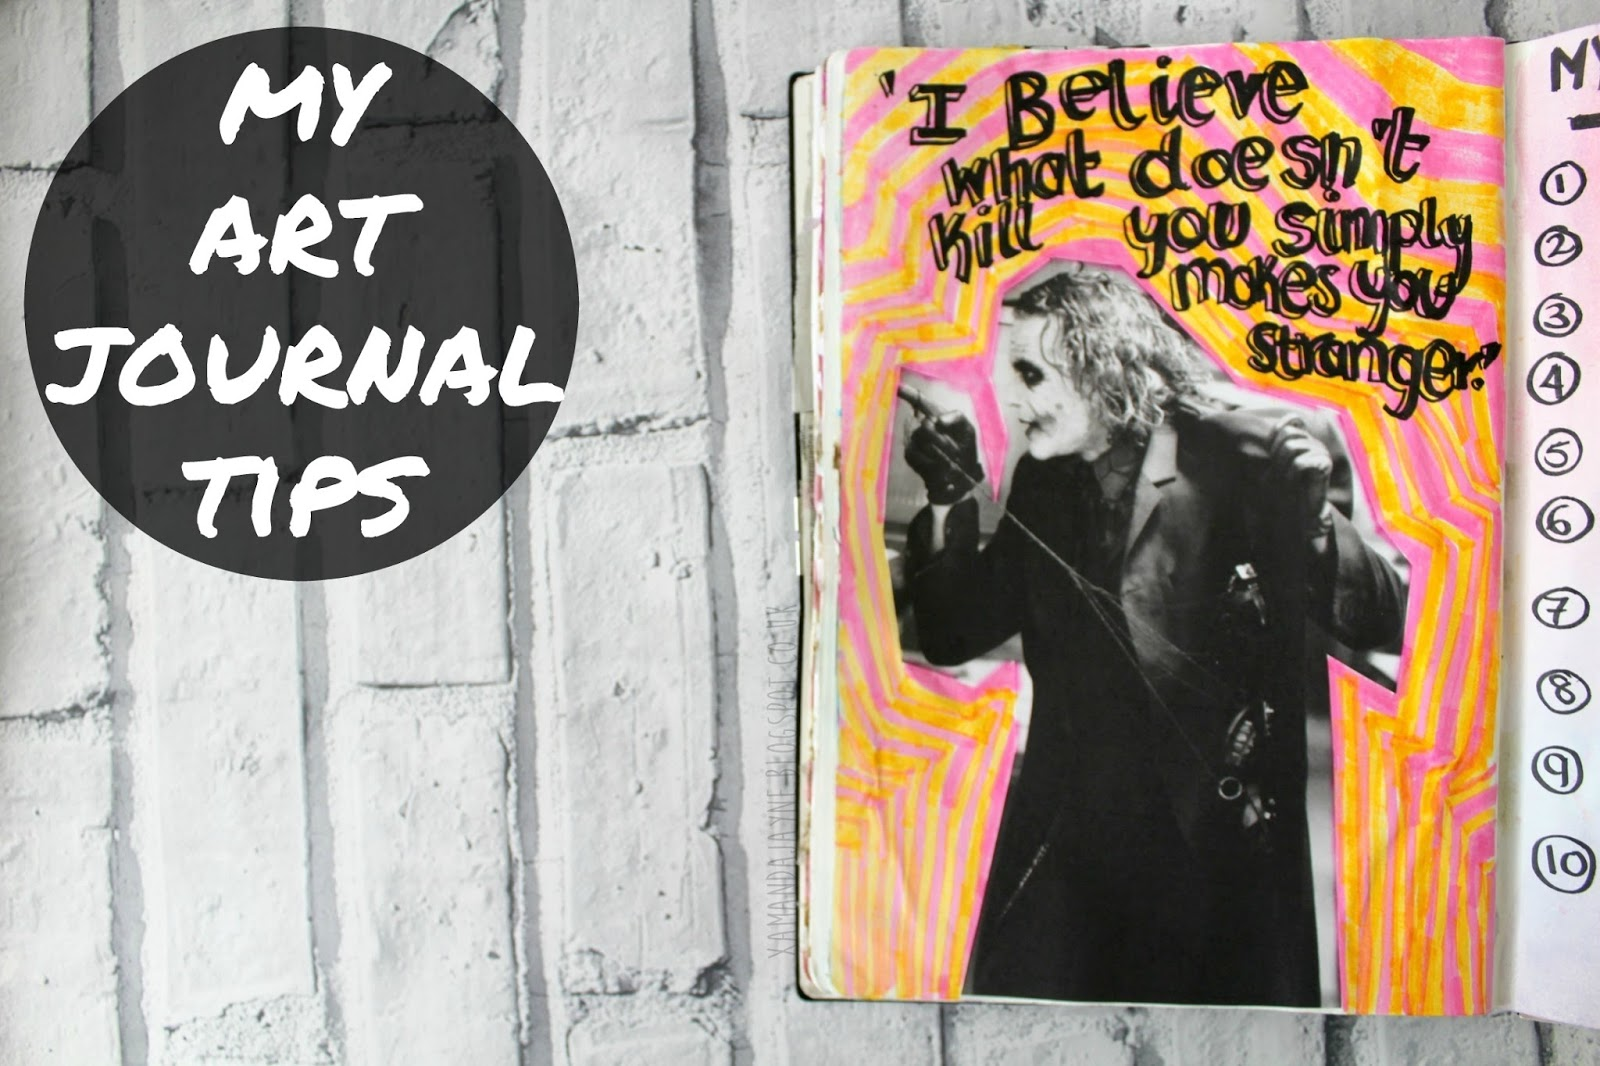 art journal, tips and tricks, art, creative, art journalling for beginners, how-to art journal